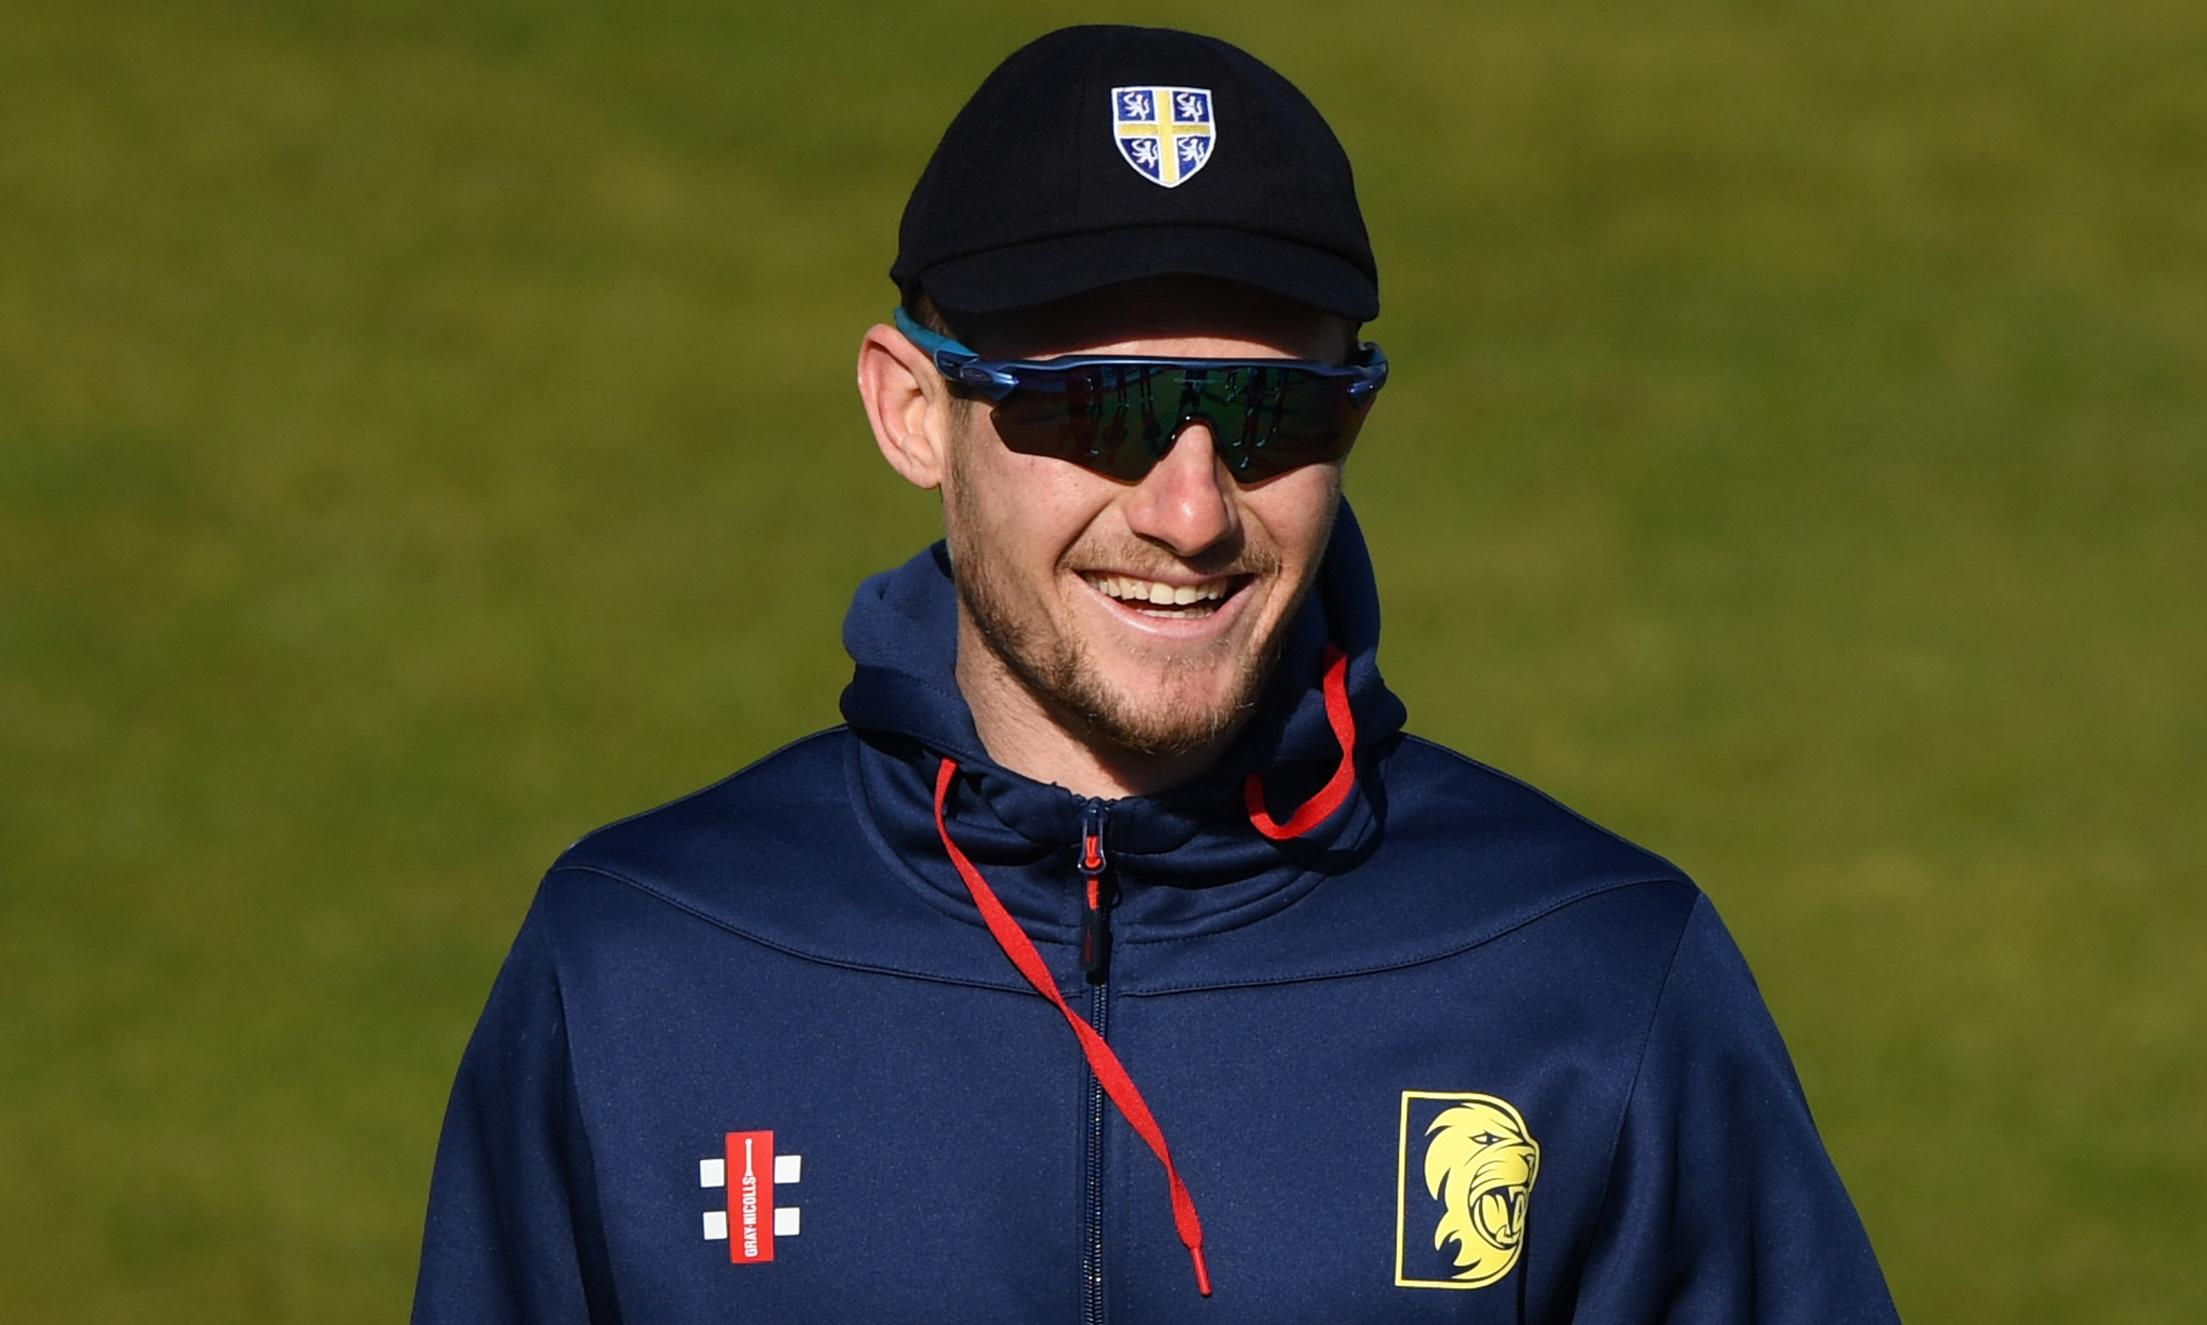 One-Day Cup roundup: Durham's Cameron Bancroft hits unbeaten 151